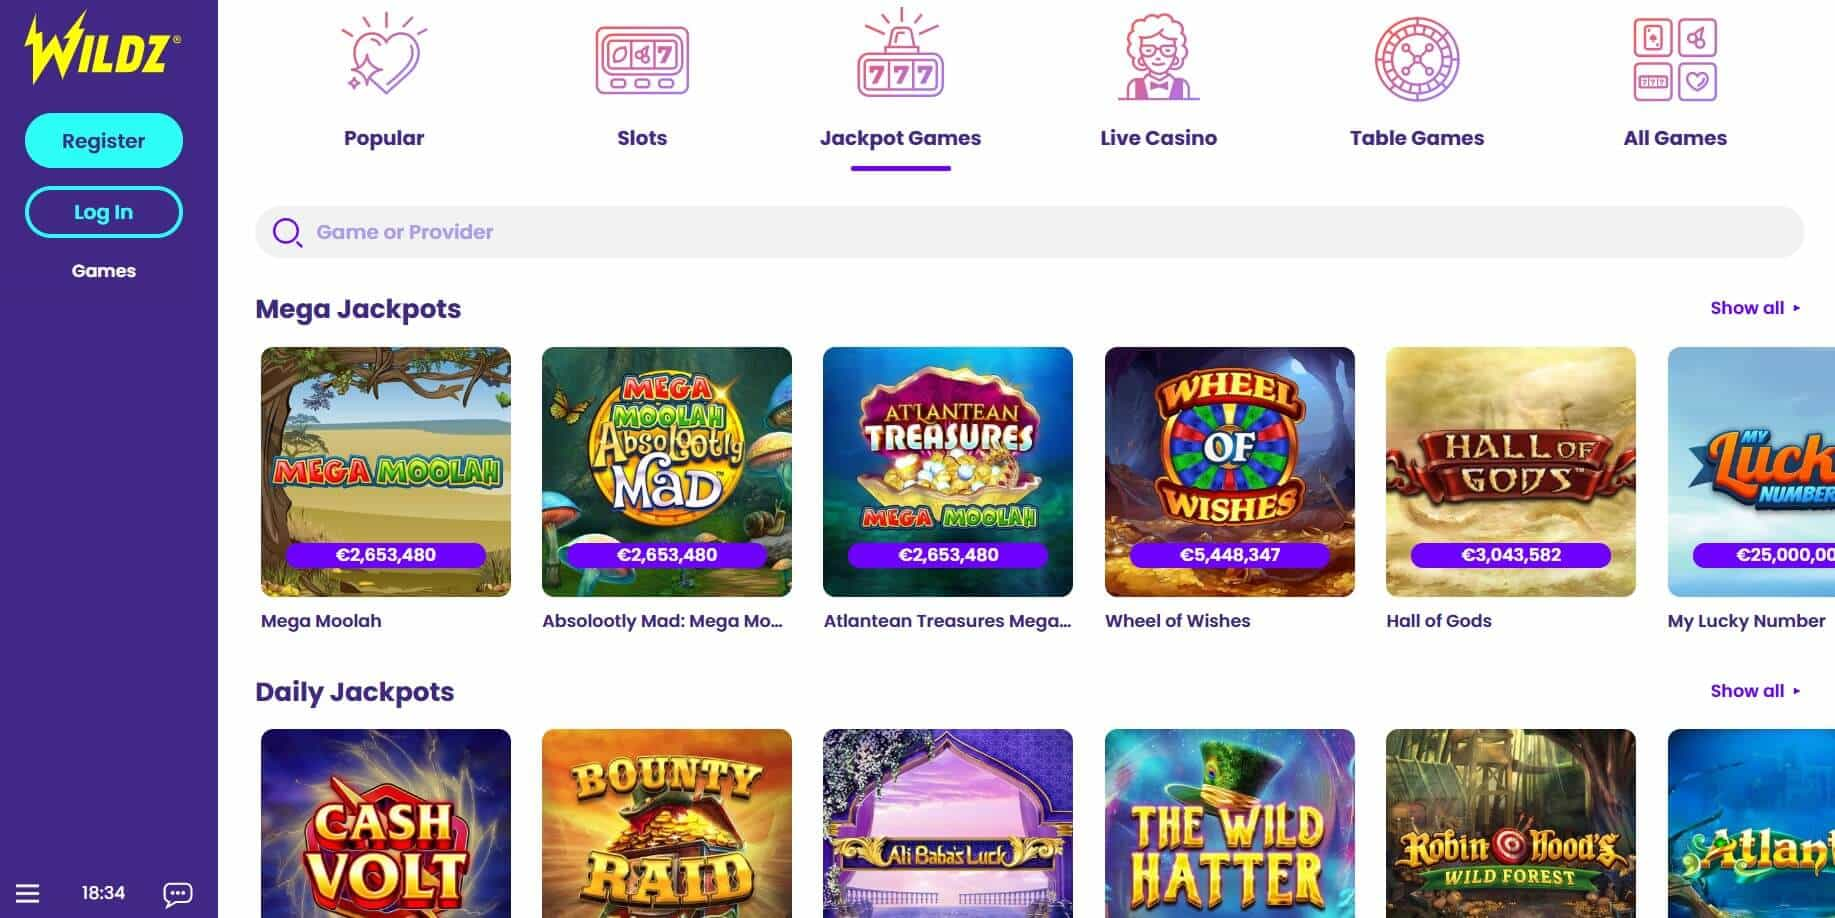 Wildz casino Jackpot games